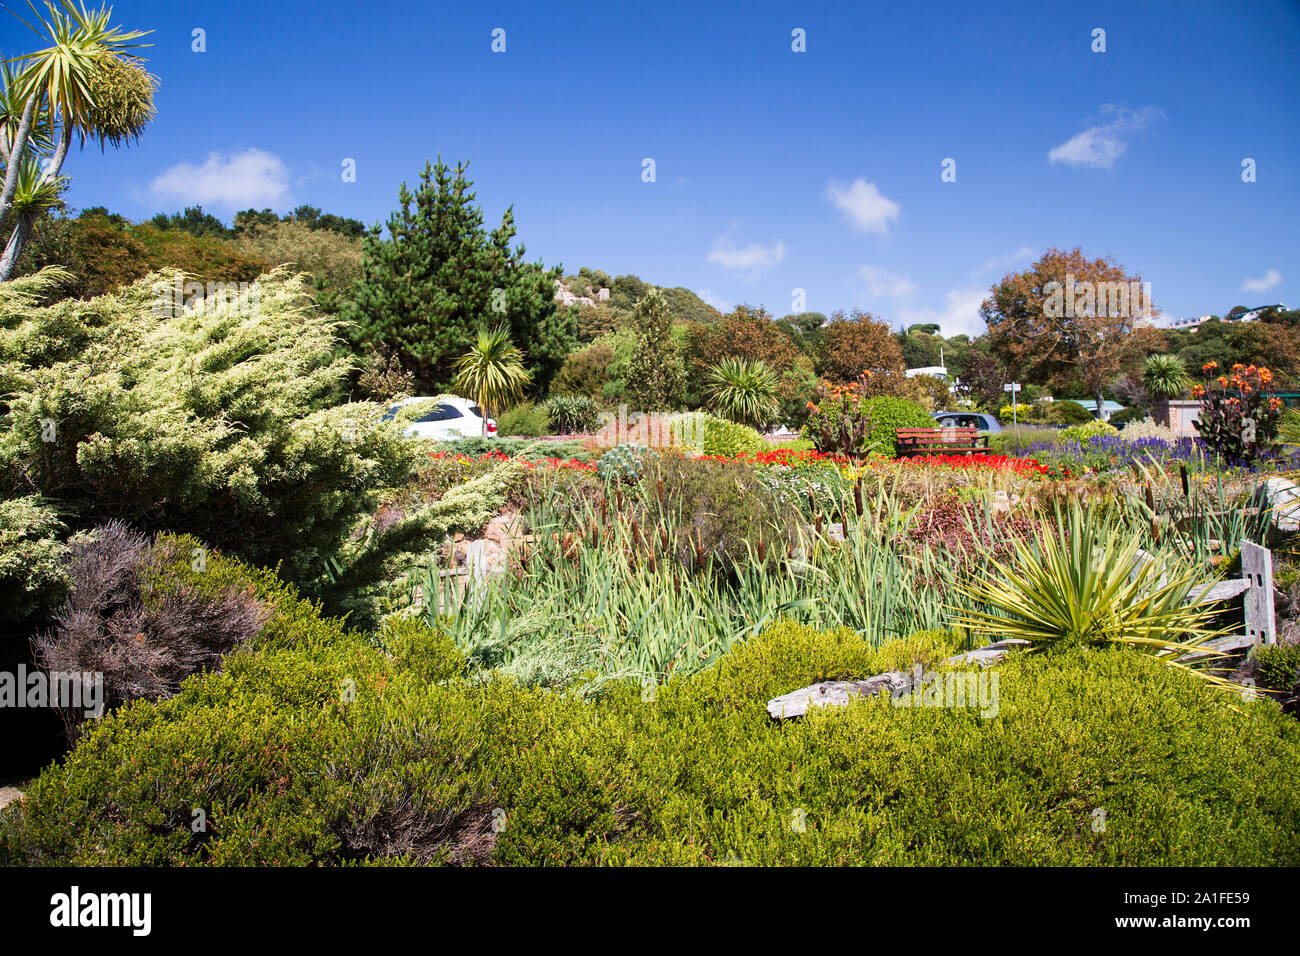 The colourful Winston Churchill Memorial Gardens at St Brelades, Jersey, Channel Islands Stock Photo